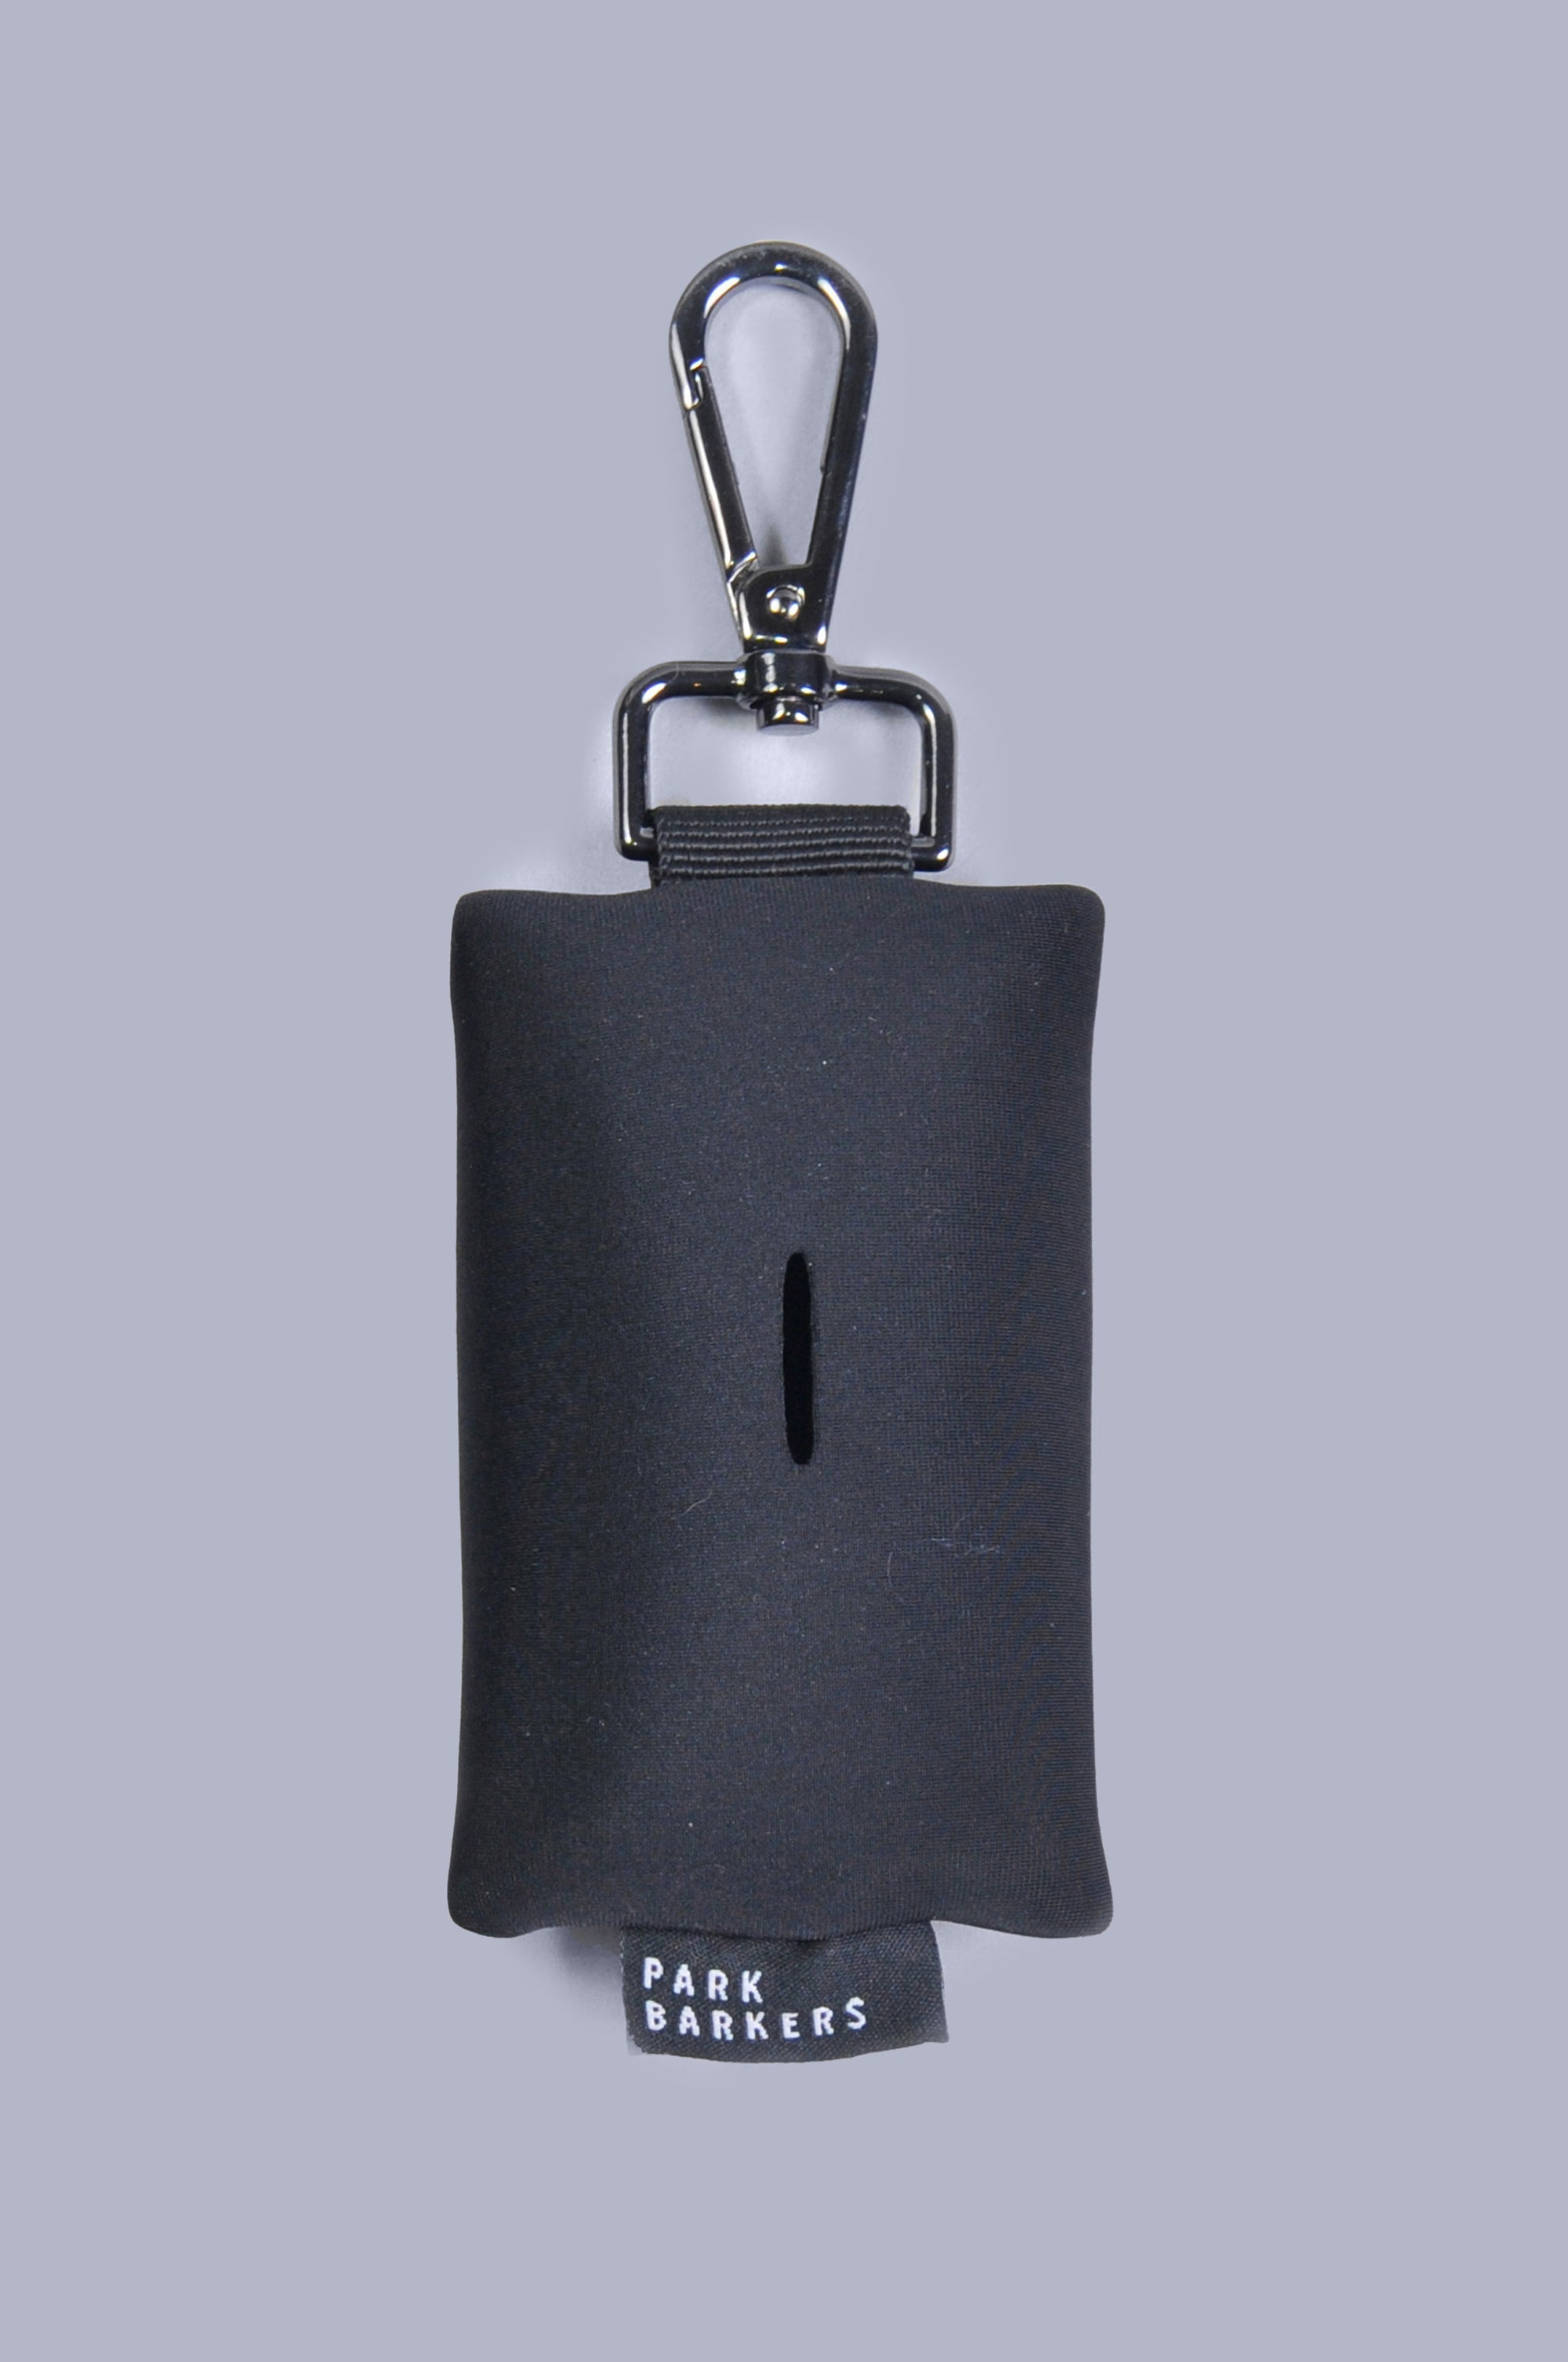 Front view of black neoprene dog wast bag holder